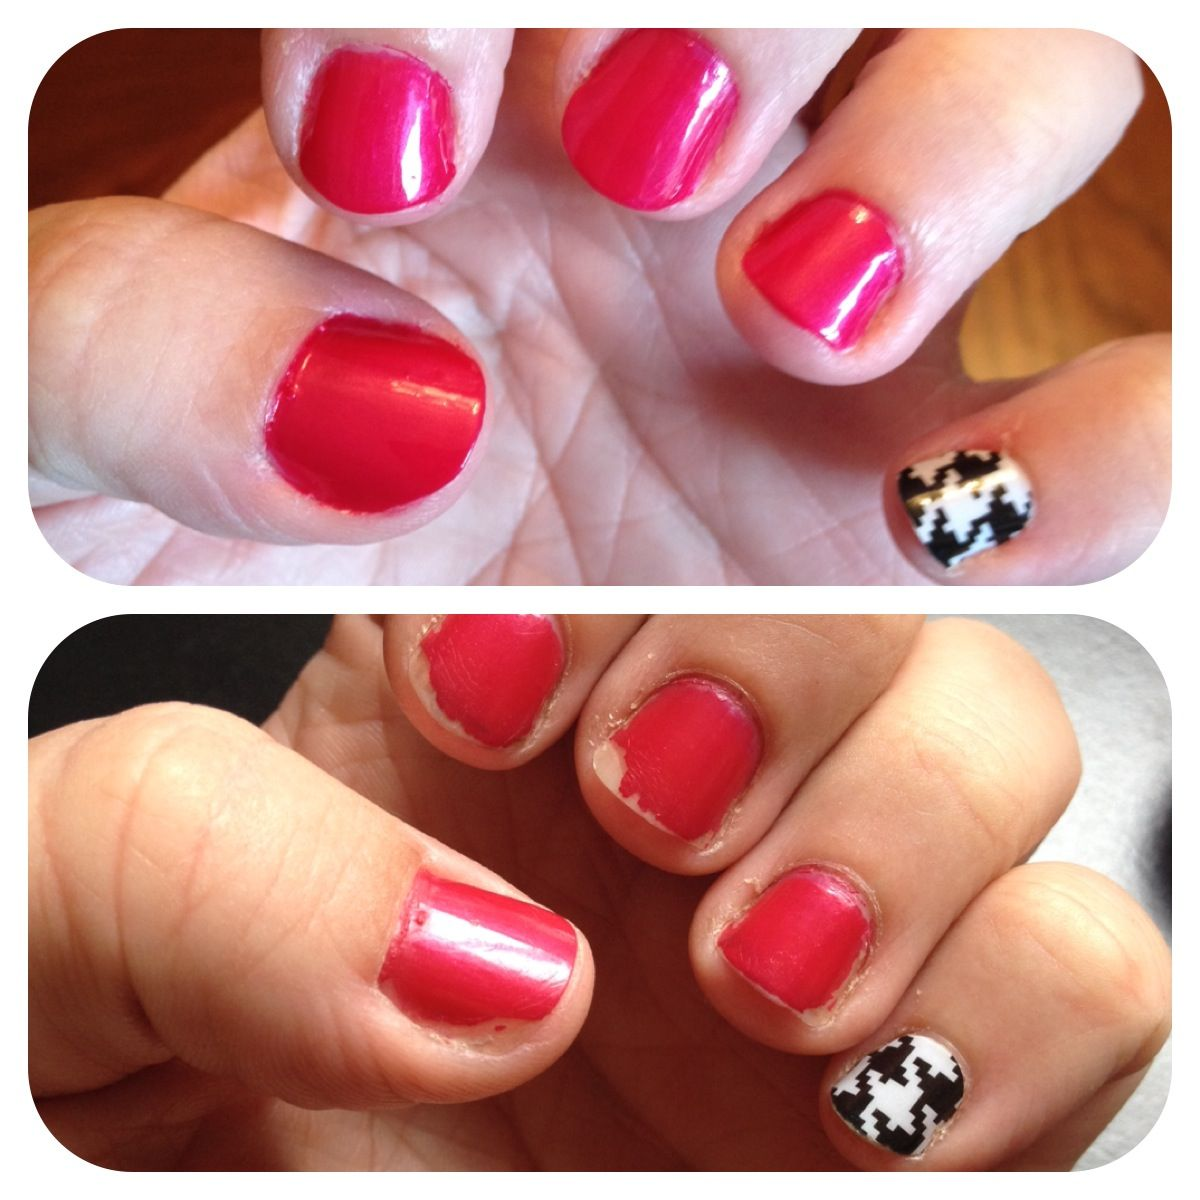 My 7 day challenge...Jamberry wrap vs. OPI nail polish. The top ...